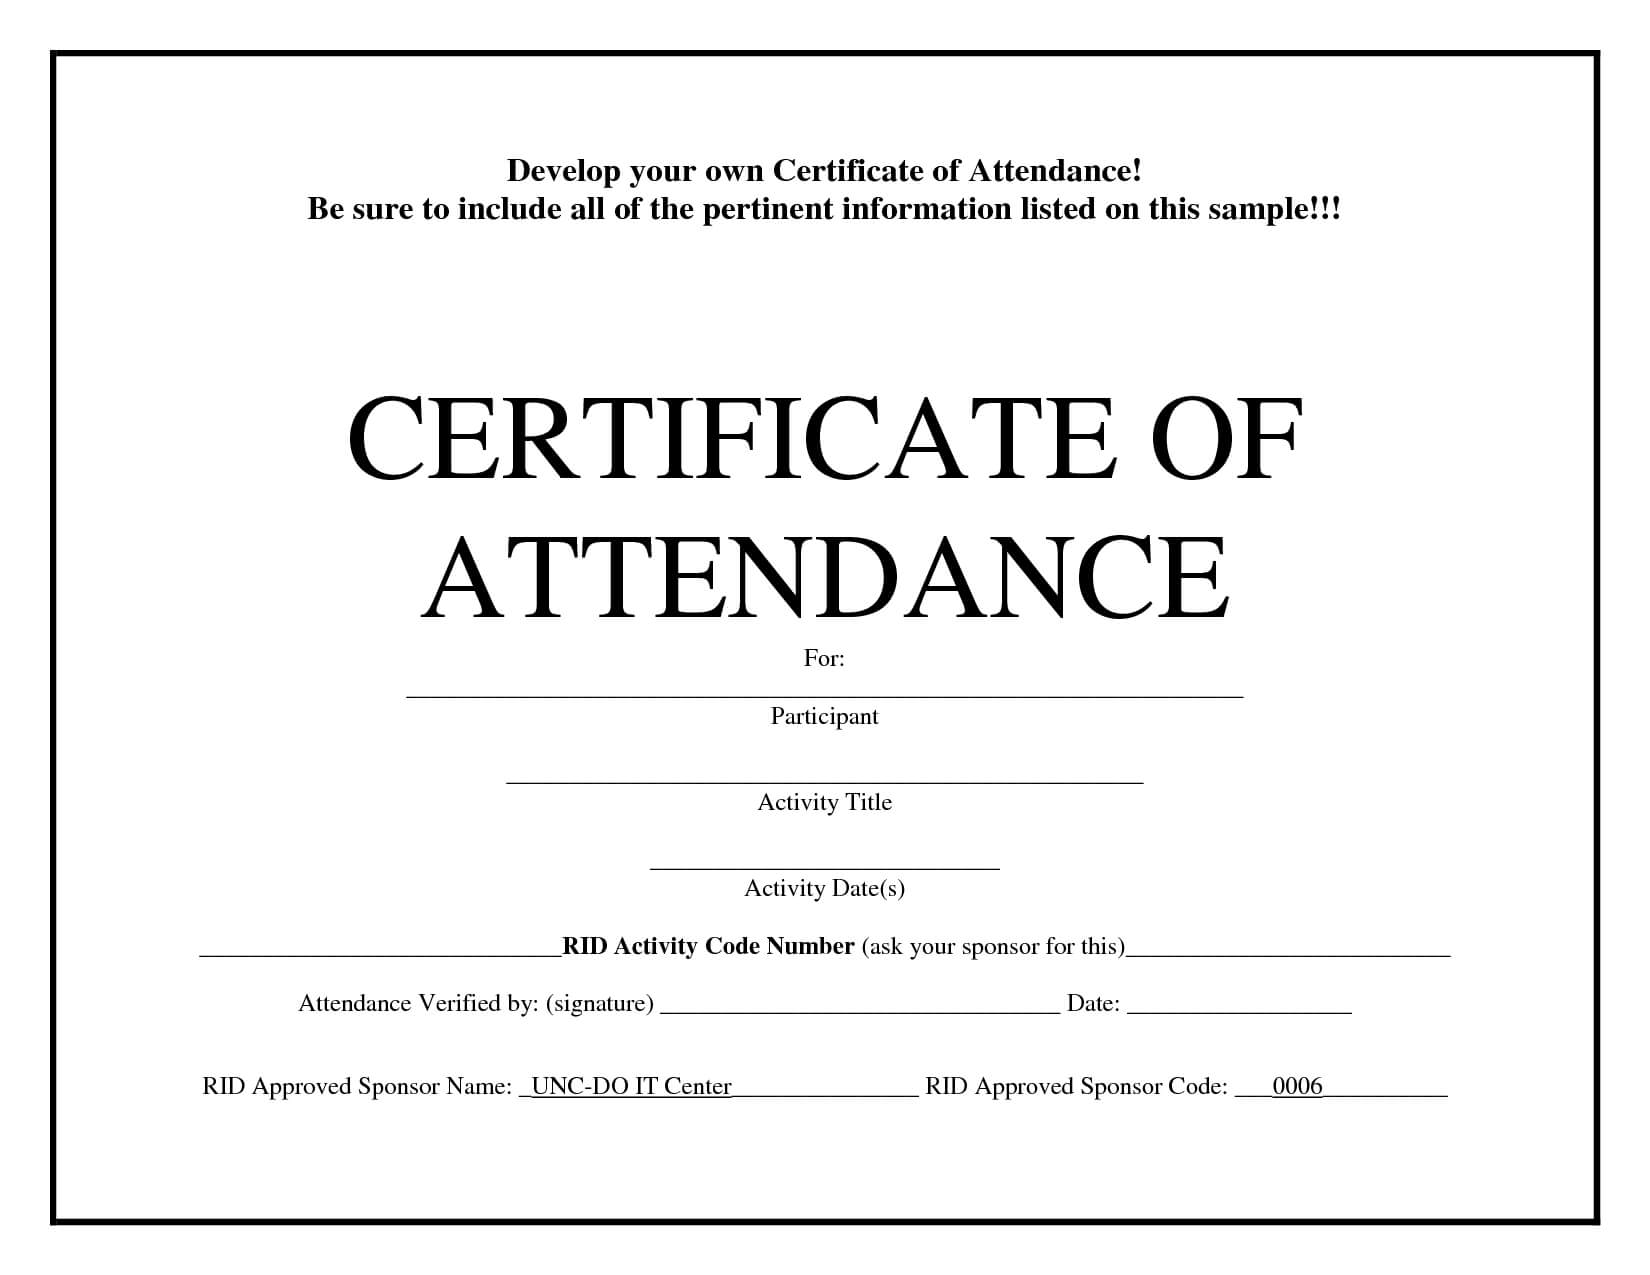 Certificate Of Attendance Template Word Free - Zohre Intended For Attendance Certificate Template Word